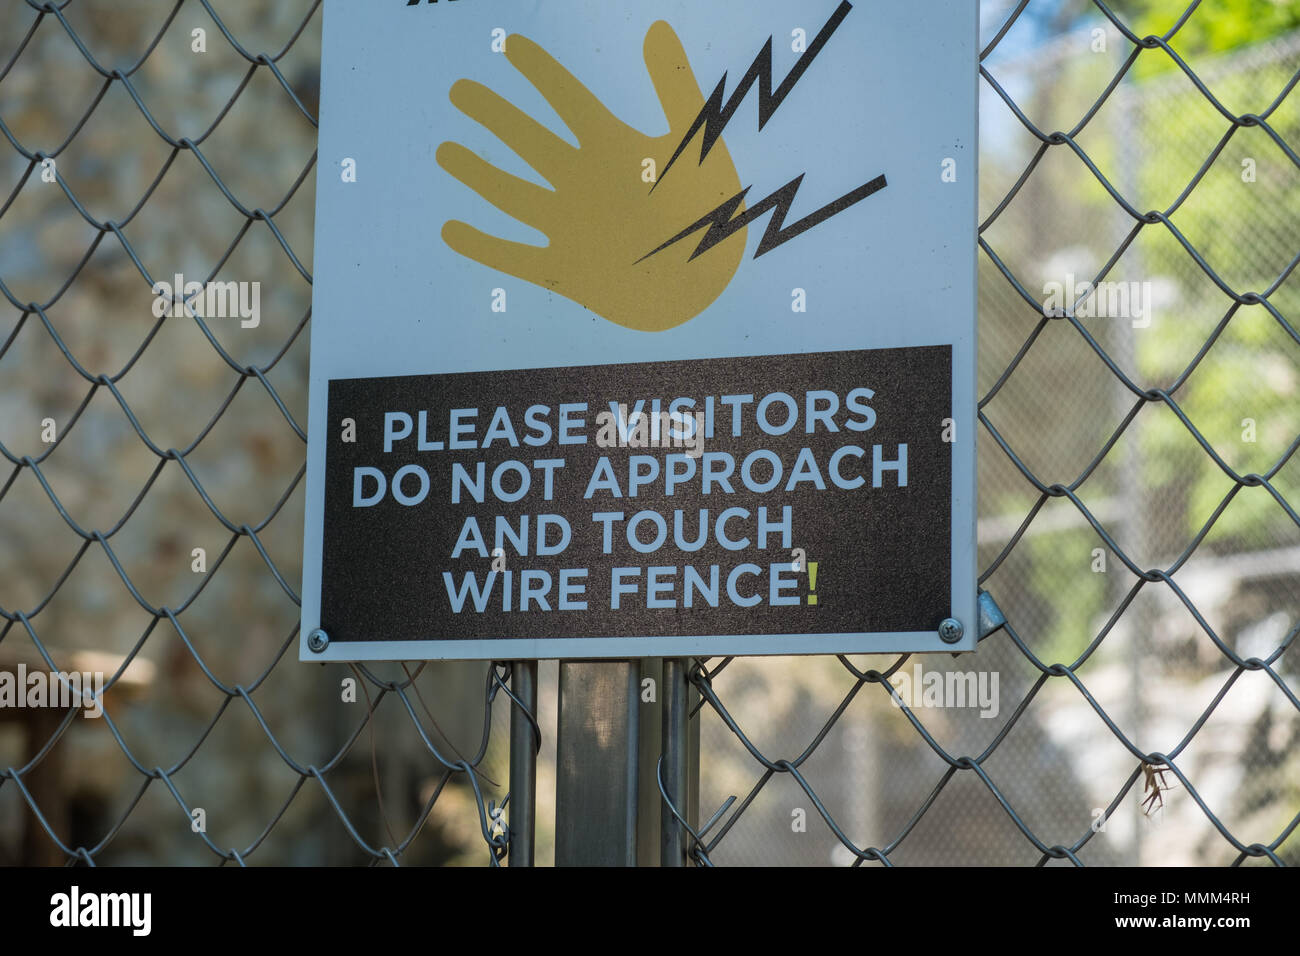 An Electrified Wire Schematic Wiring Diagram Mile 14gauge Galvanized Electric Fence Wire317774a The Home Depot Stock Photos Images Alamy Rh Com Woven Barb Safety